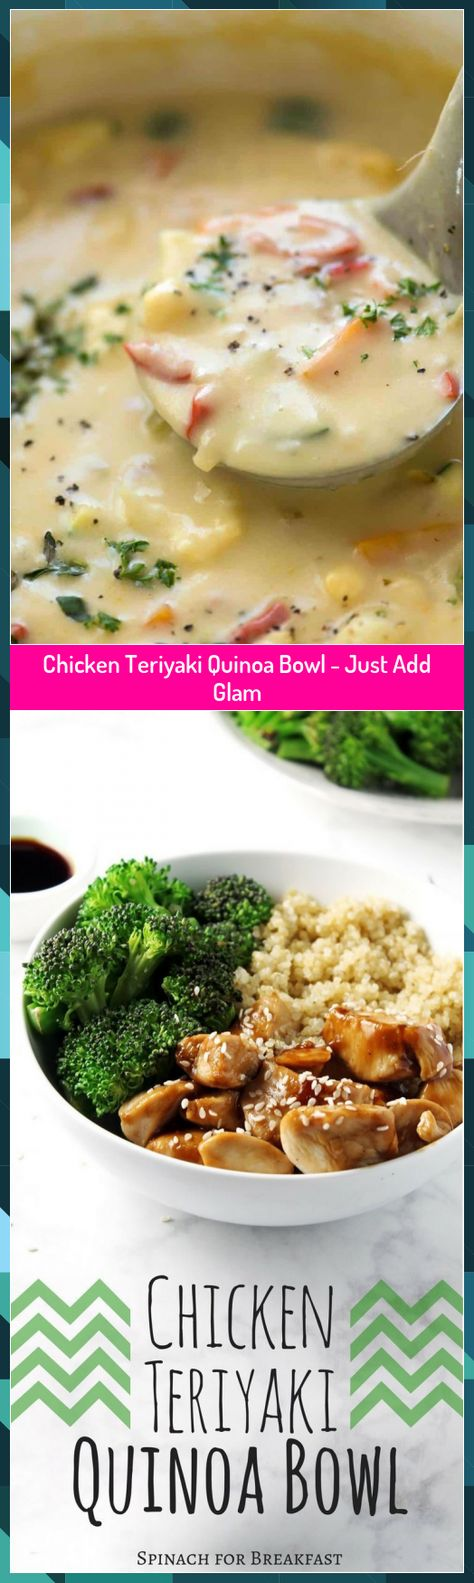 Chicken Teriyaki Quinoa Bowl - Just Add Glam #Add #Bowl #Chicken #Glam #Quinoa #Teriyaki